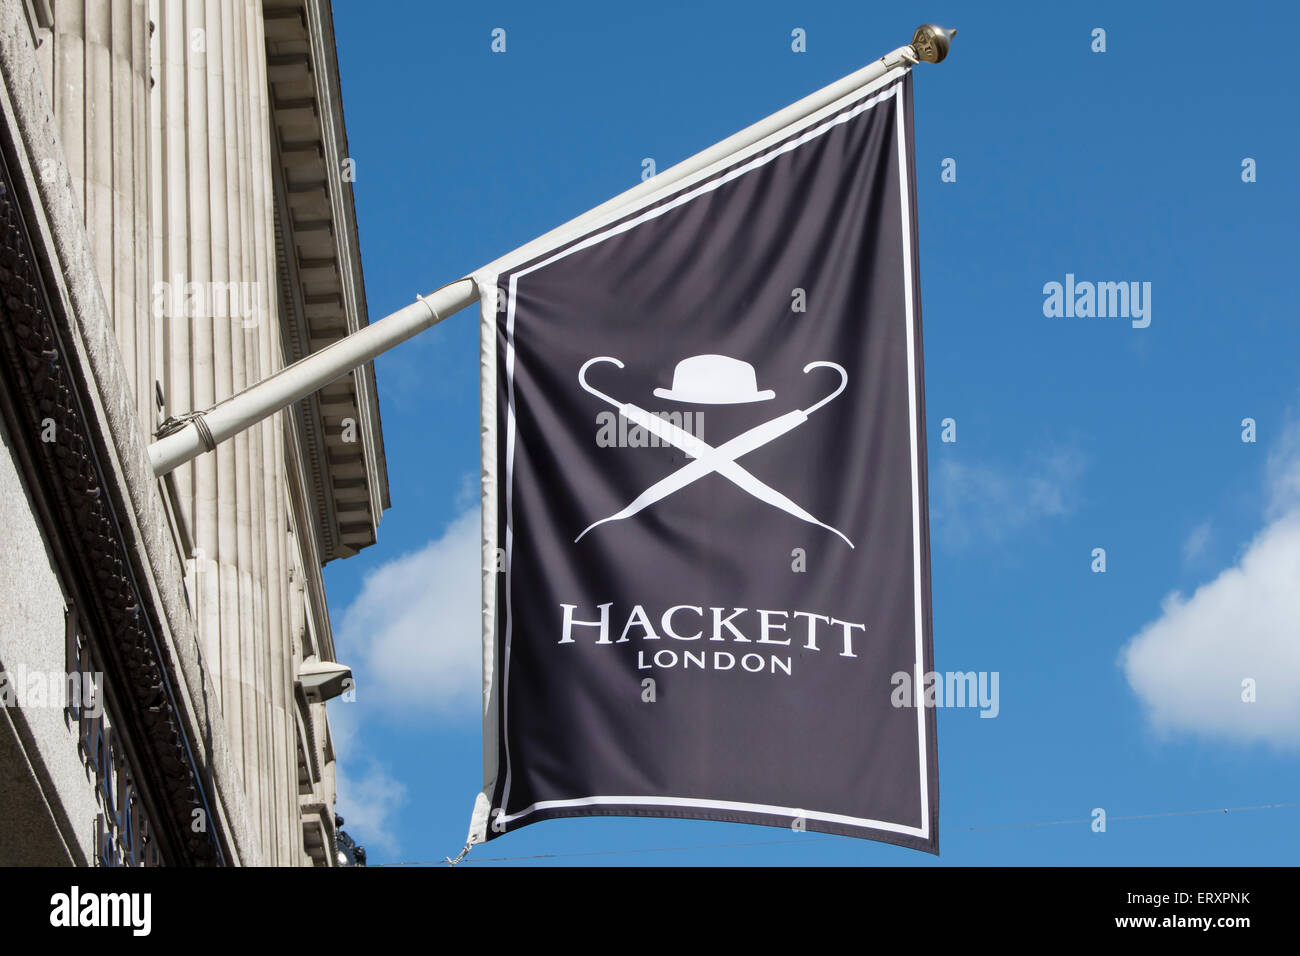 hanging flag sign with logo for luxury mens clothing store, hackett, regent street, london, england - Stock Image